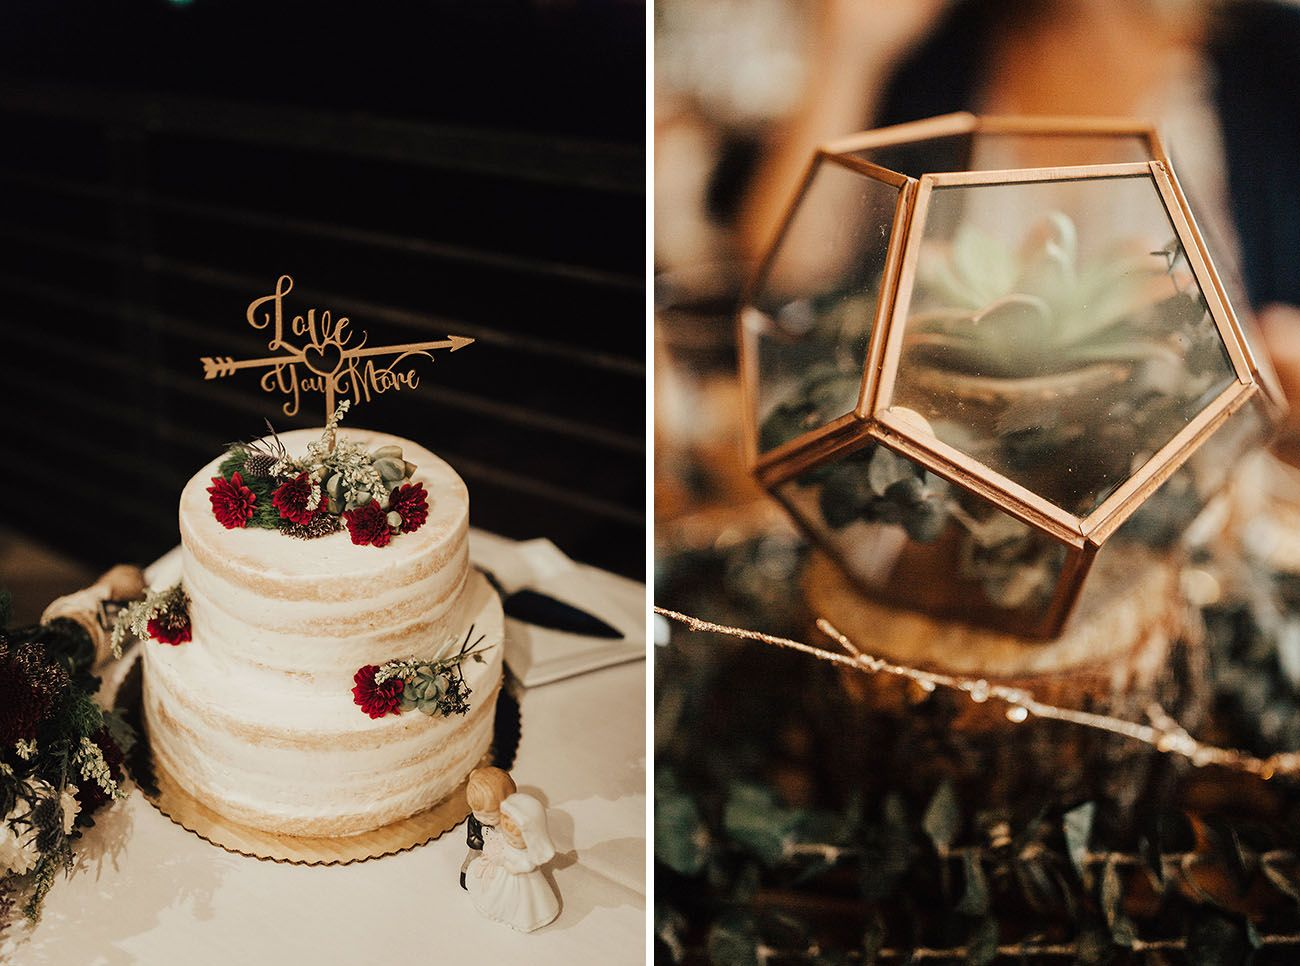 Wedding decorations near me october 2018 Wedded in the Woods of Grand Teton National Park  Winter weddings